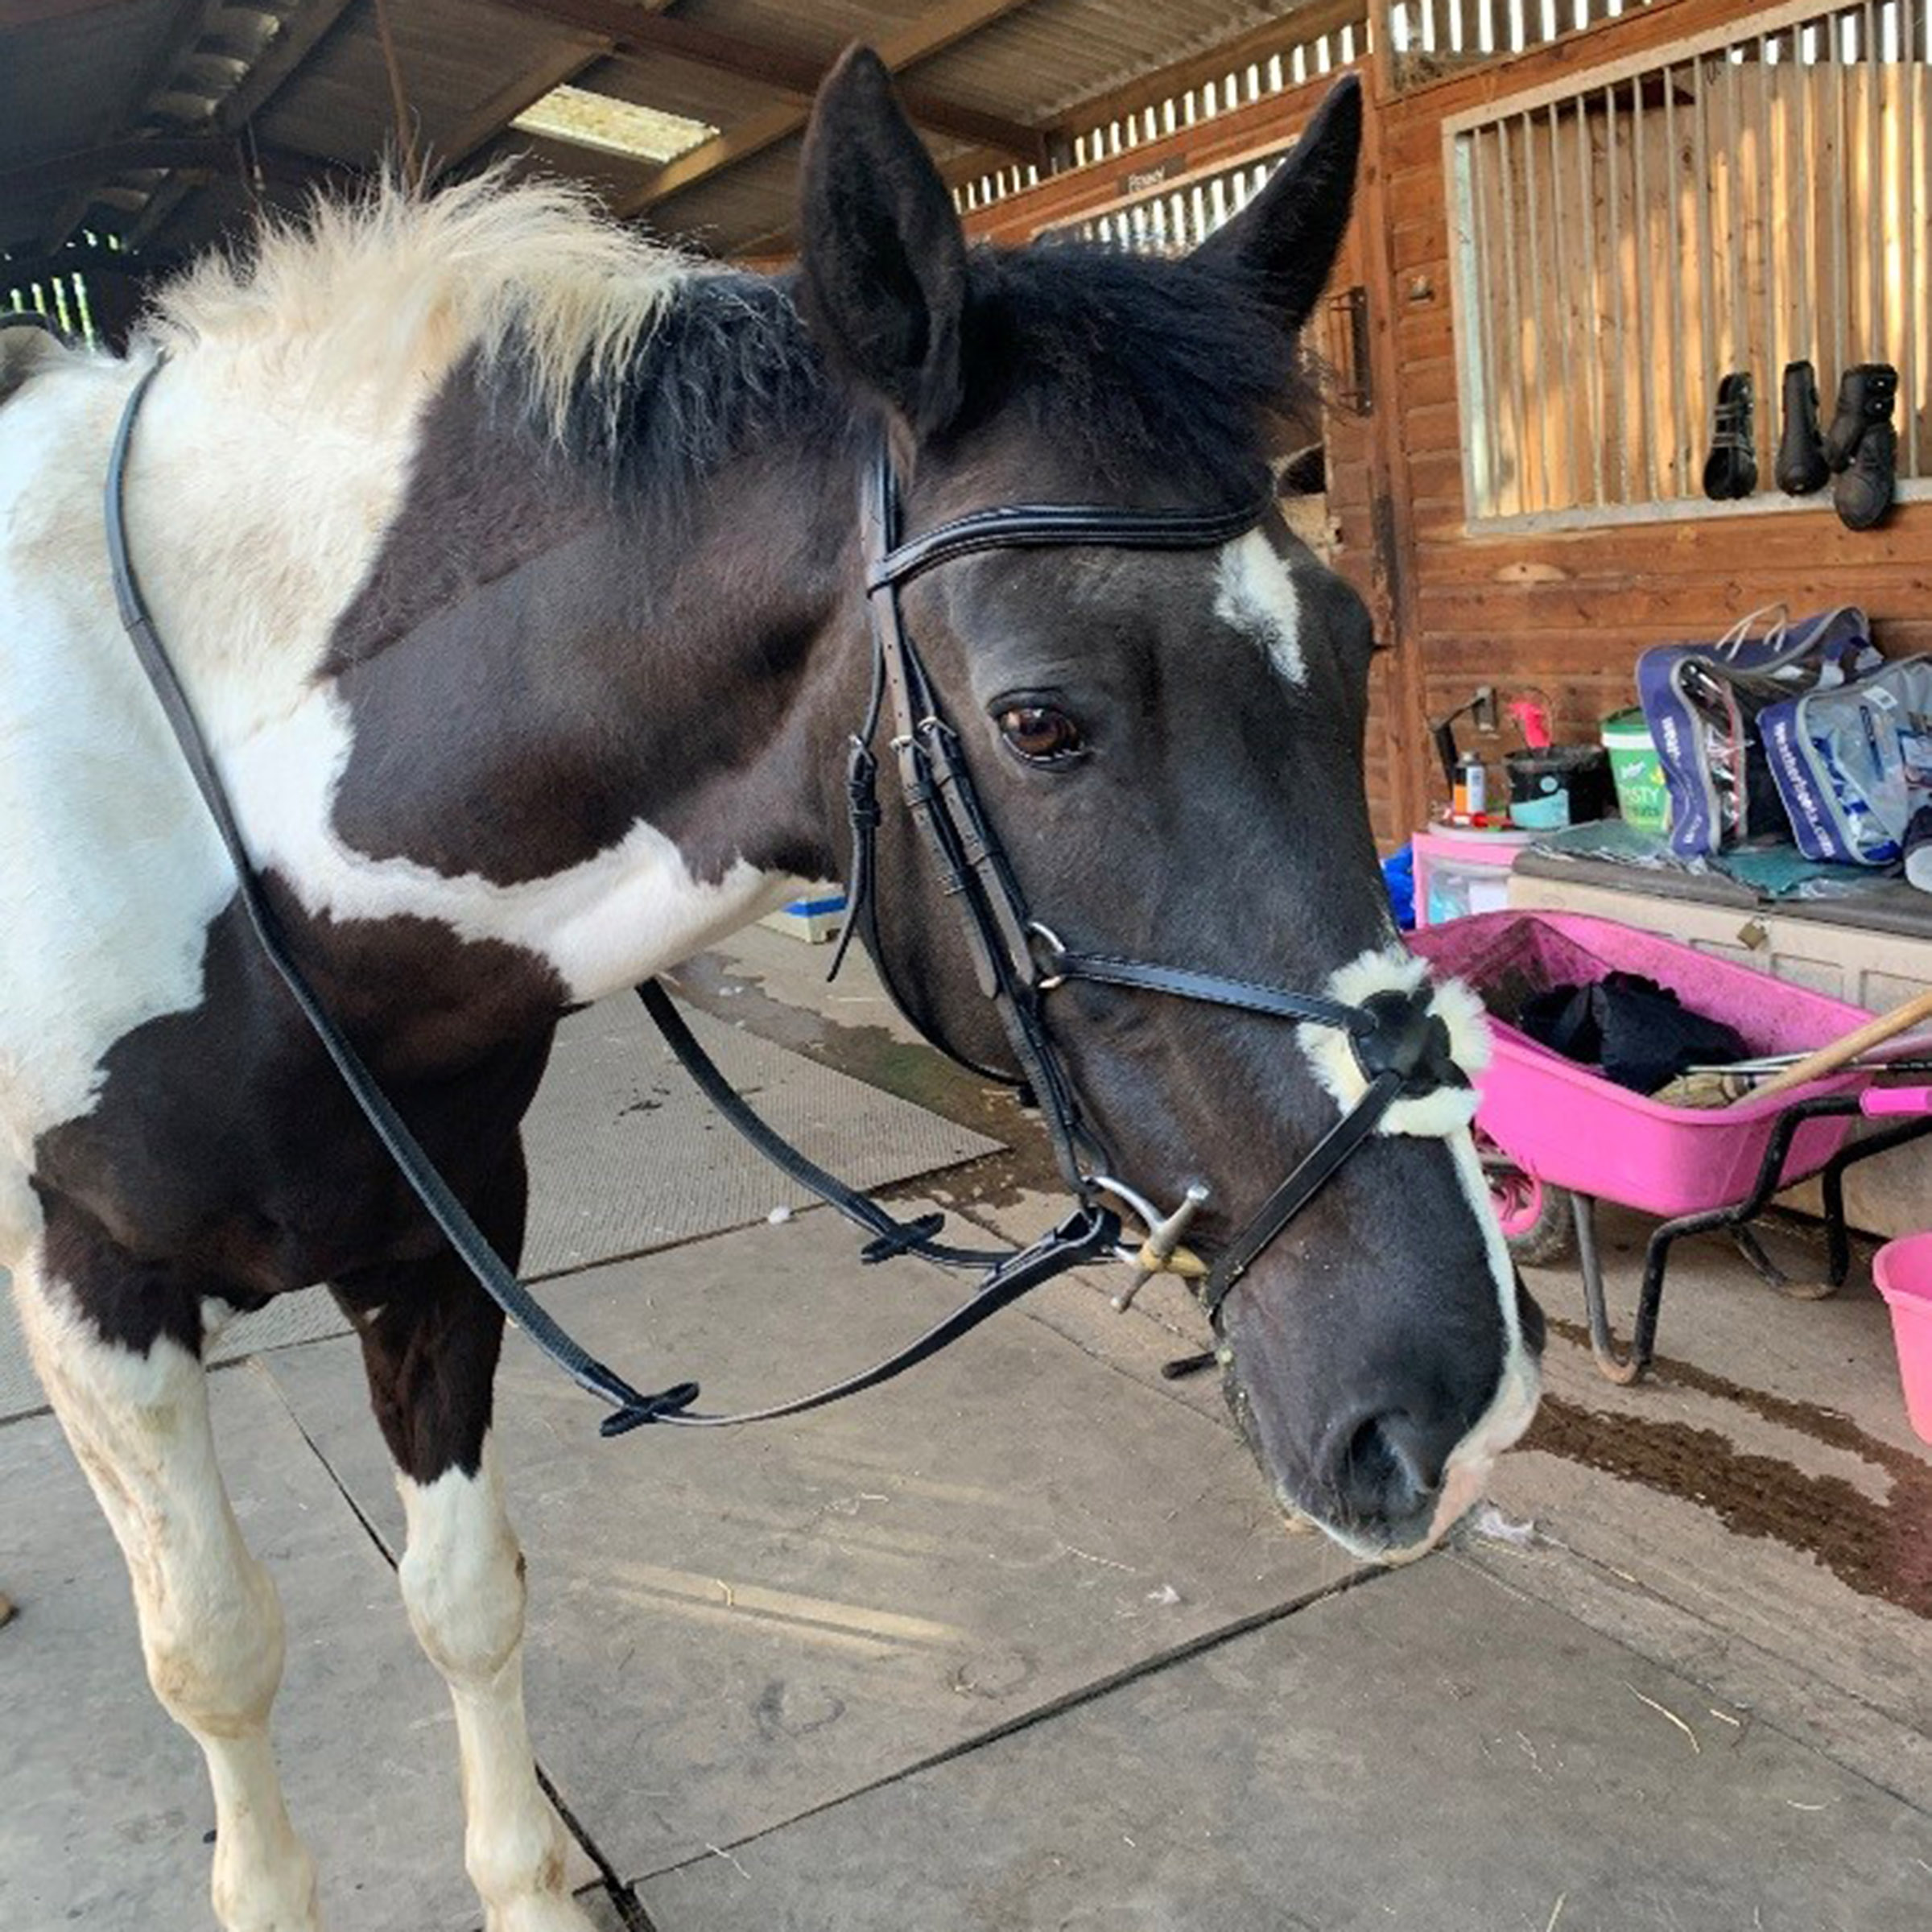 Product Review: Collegiate Mono Crown Padded bridle